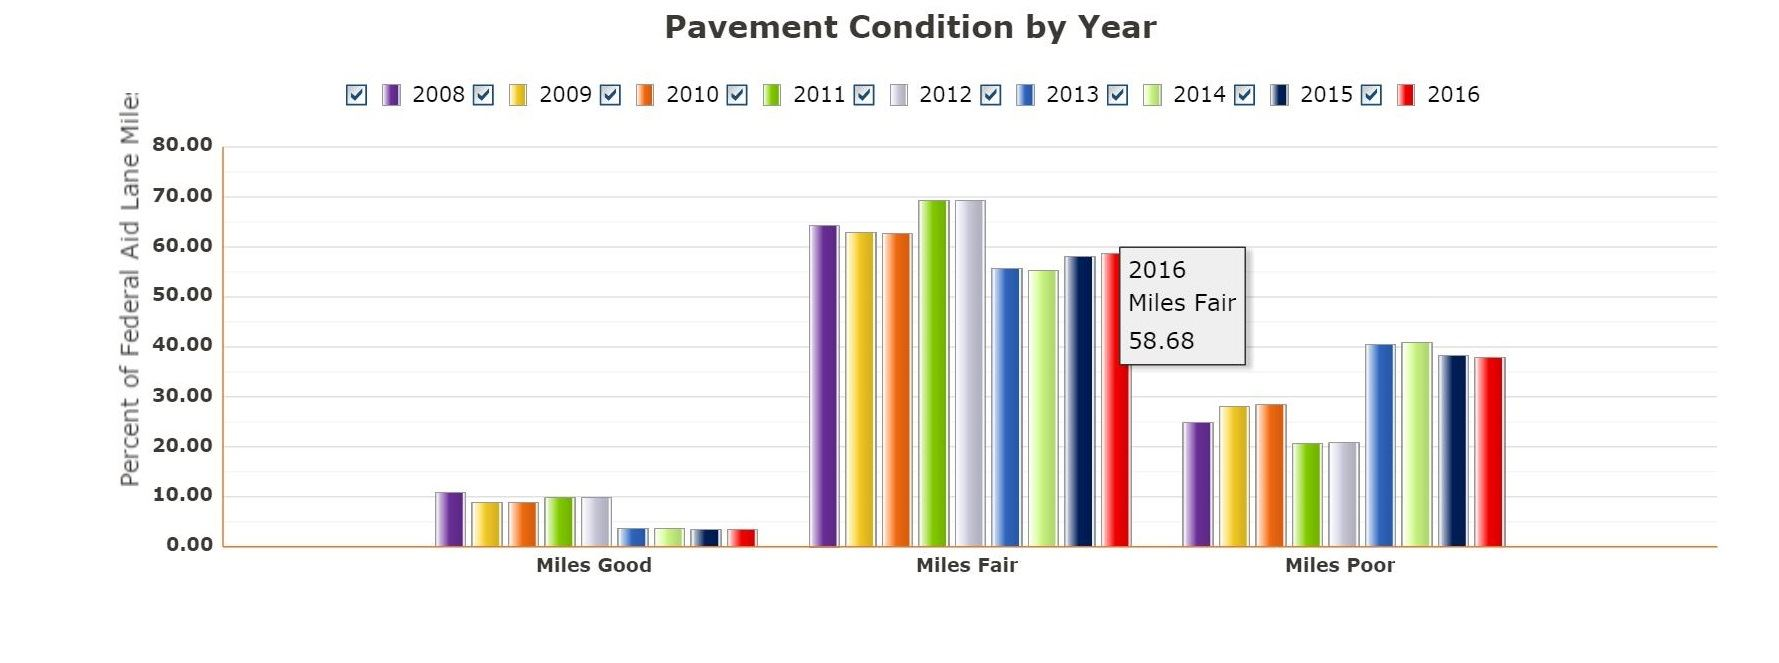 Pavement Condition by year